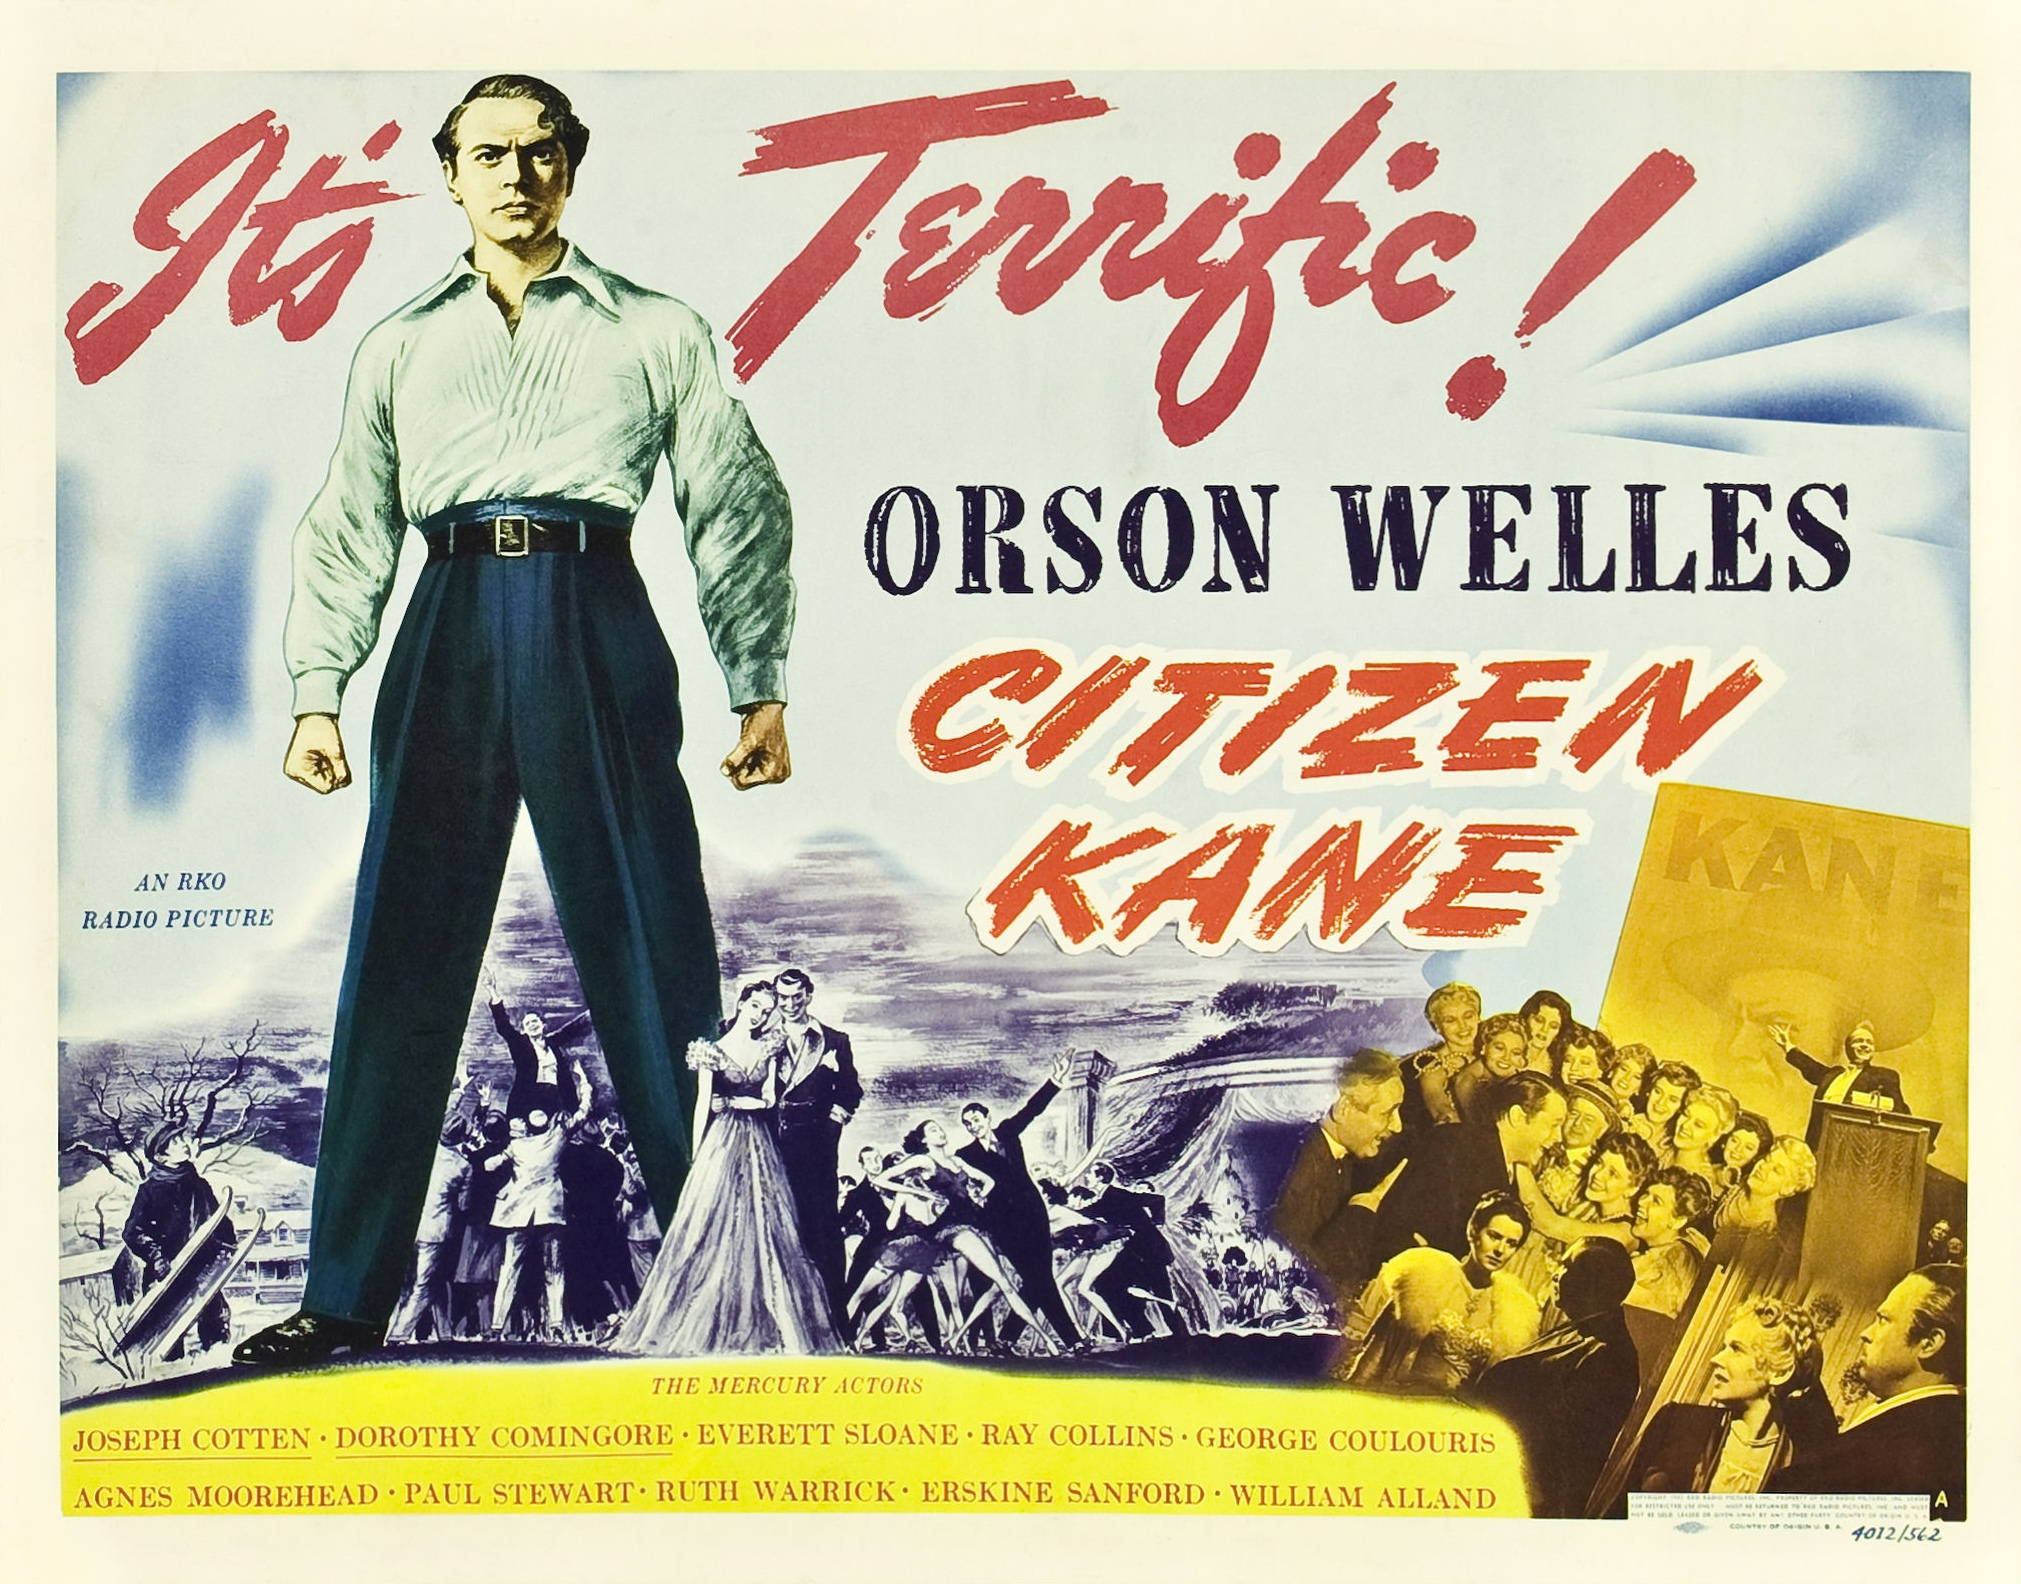 an analysis of the film citizen kane By robert kroll while there are many differences in orson welles' proposal for a 1950s television adaptation of citizen kane, perhaps what is most surprising is how much it would have stayed true to his landmark 1941 movie acquired by indiana university's lilly library in october 2015, the proposal.